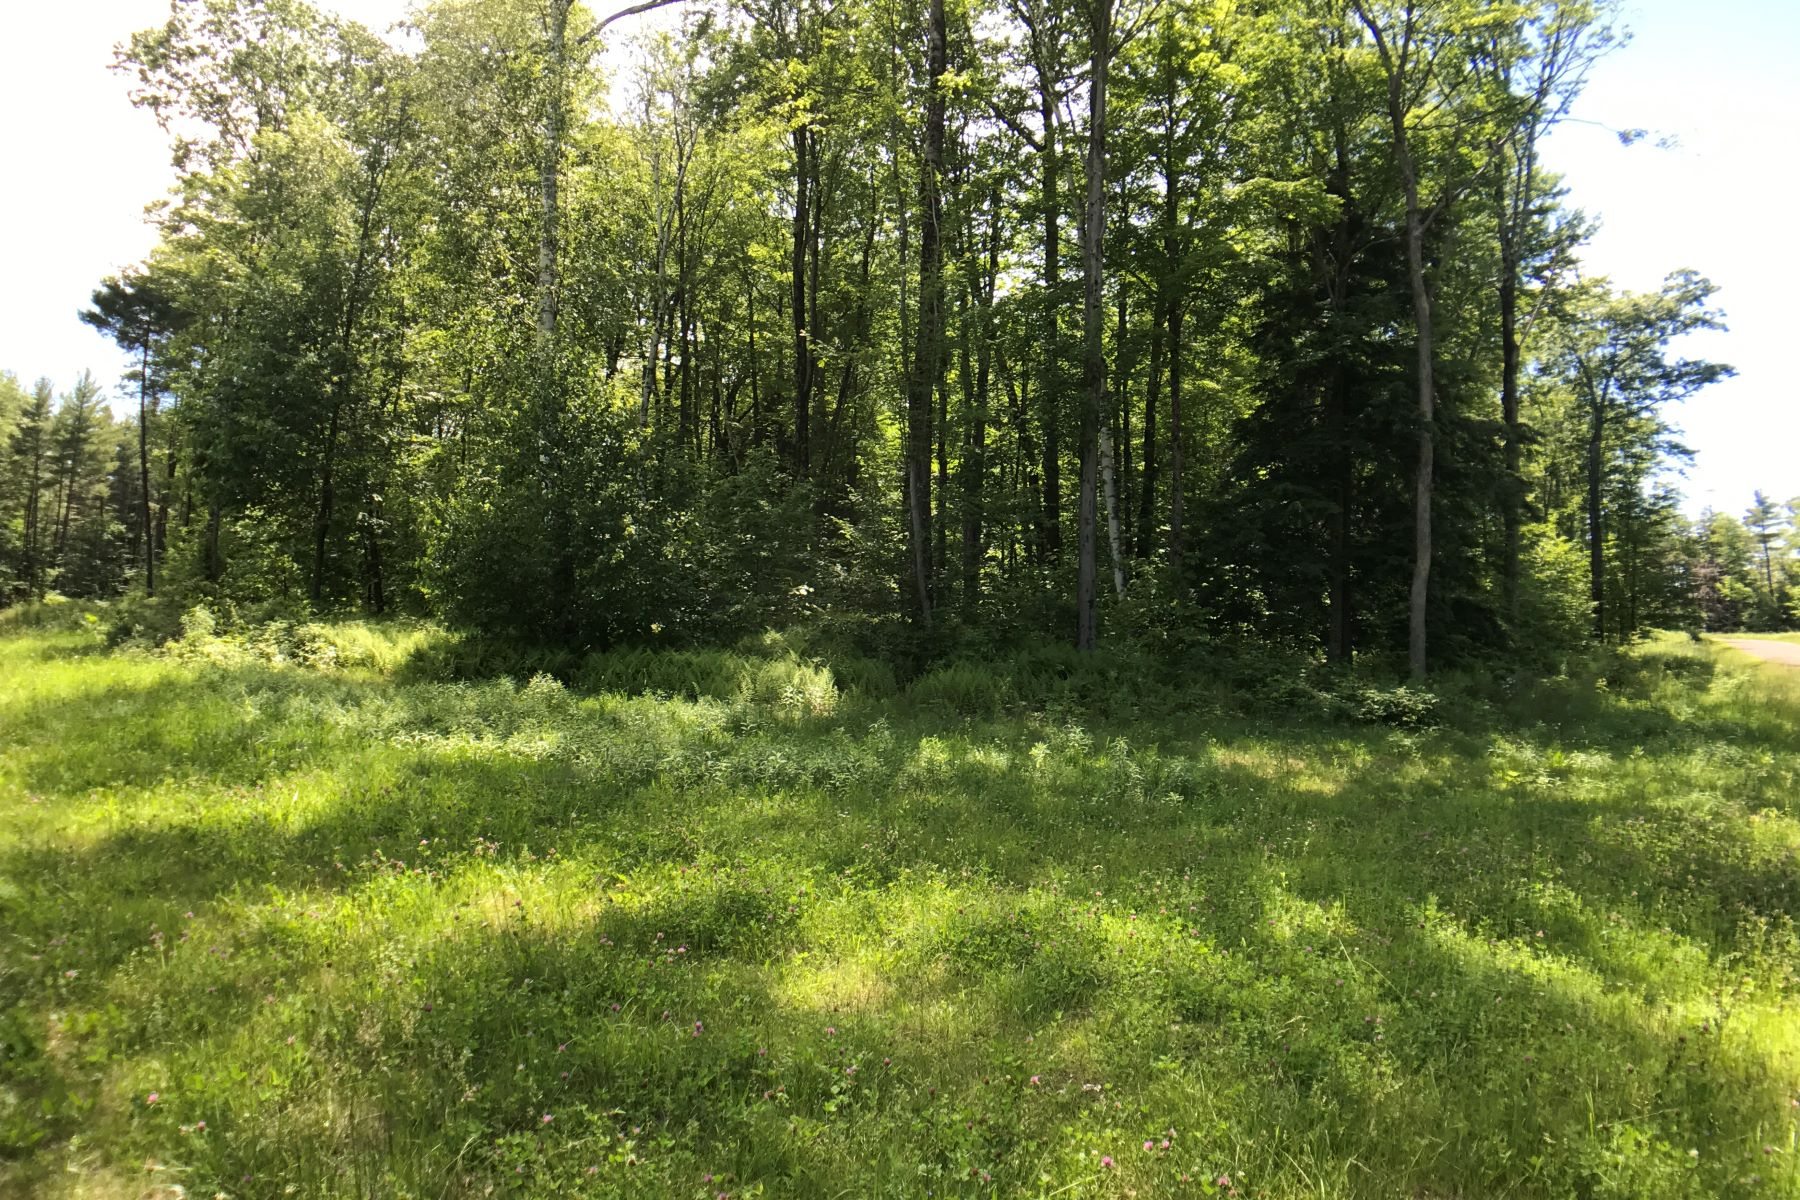 Terrain pour l Vente à Affordable Ready-to-Build Parcel with Shared Waterfront Access Lot #2, Moose Dr, Lee, Massachusetts, 01238 États-Unis